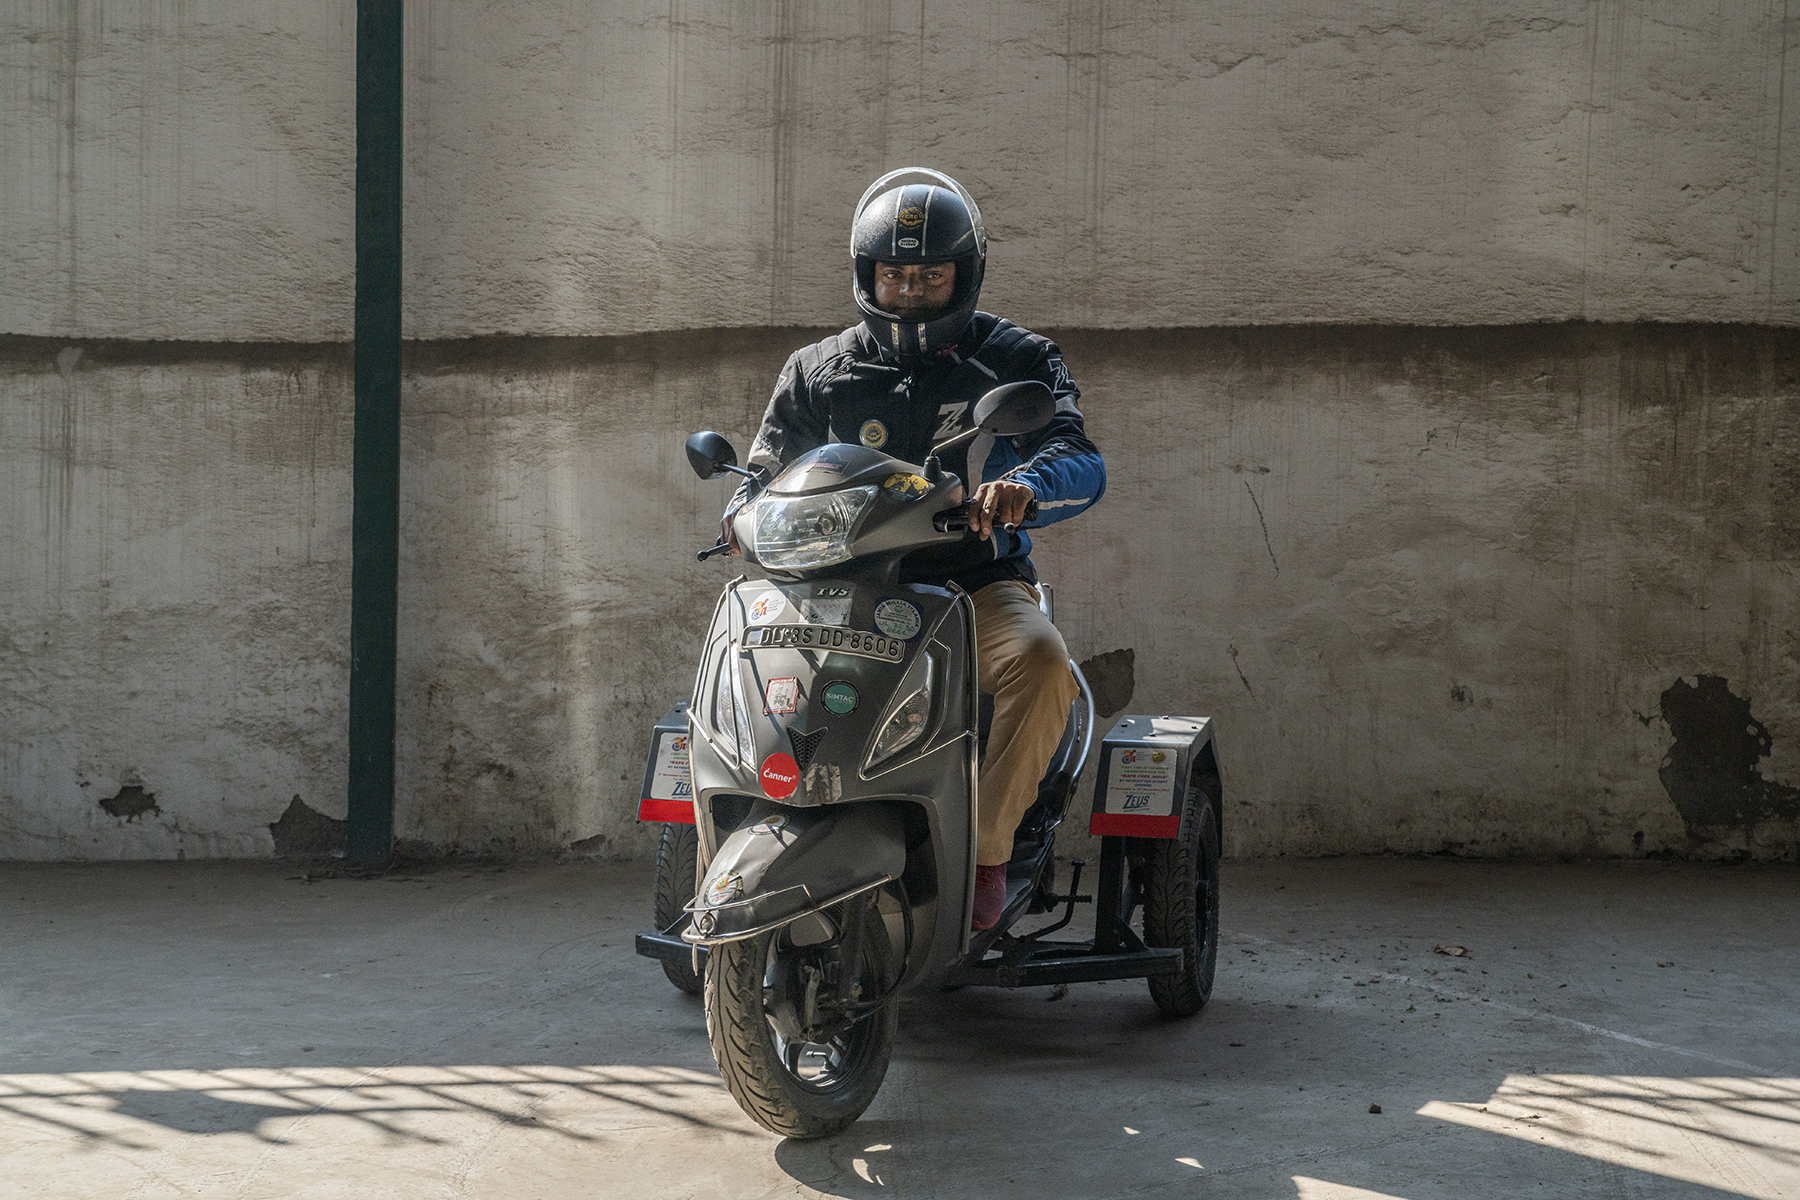 Ameer astride his black retrofitted scooter, wearing a full-face helmet and black jacket